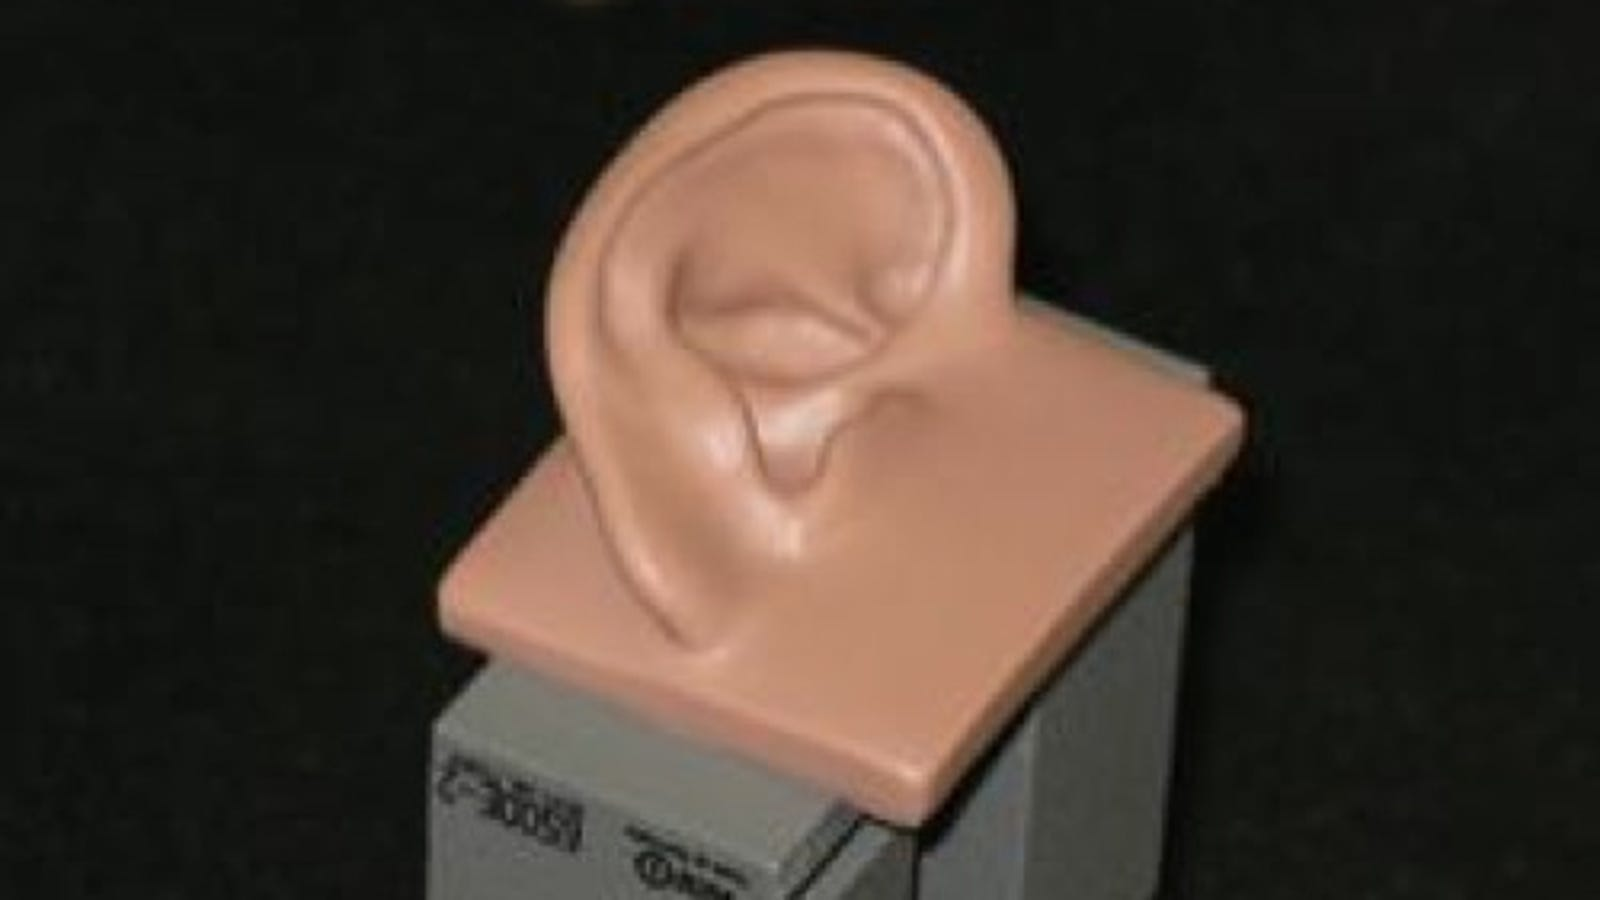 earbuds tips phaiser - Researchers Claim They've Created the Perfect 3D Human Ear Model